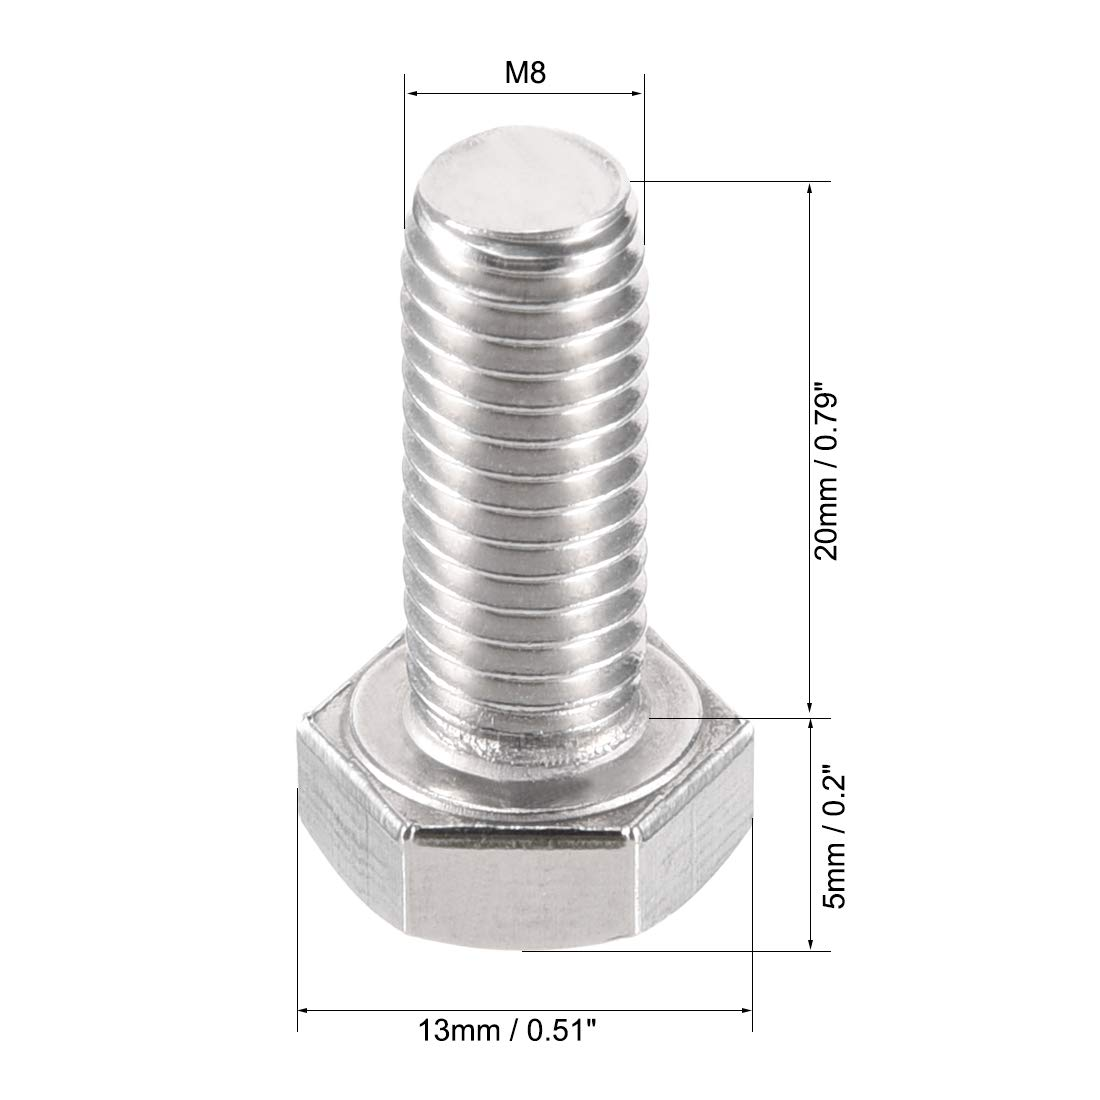 Stainless Steel Reverse Threaded Hex Tap Screw Bolts 2pcs uxcell M10 Left Hand Hex Head Bolt M10-1.5 x 20mm UNC A2-70 304